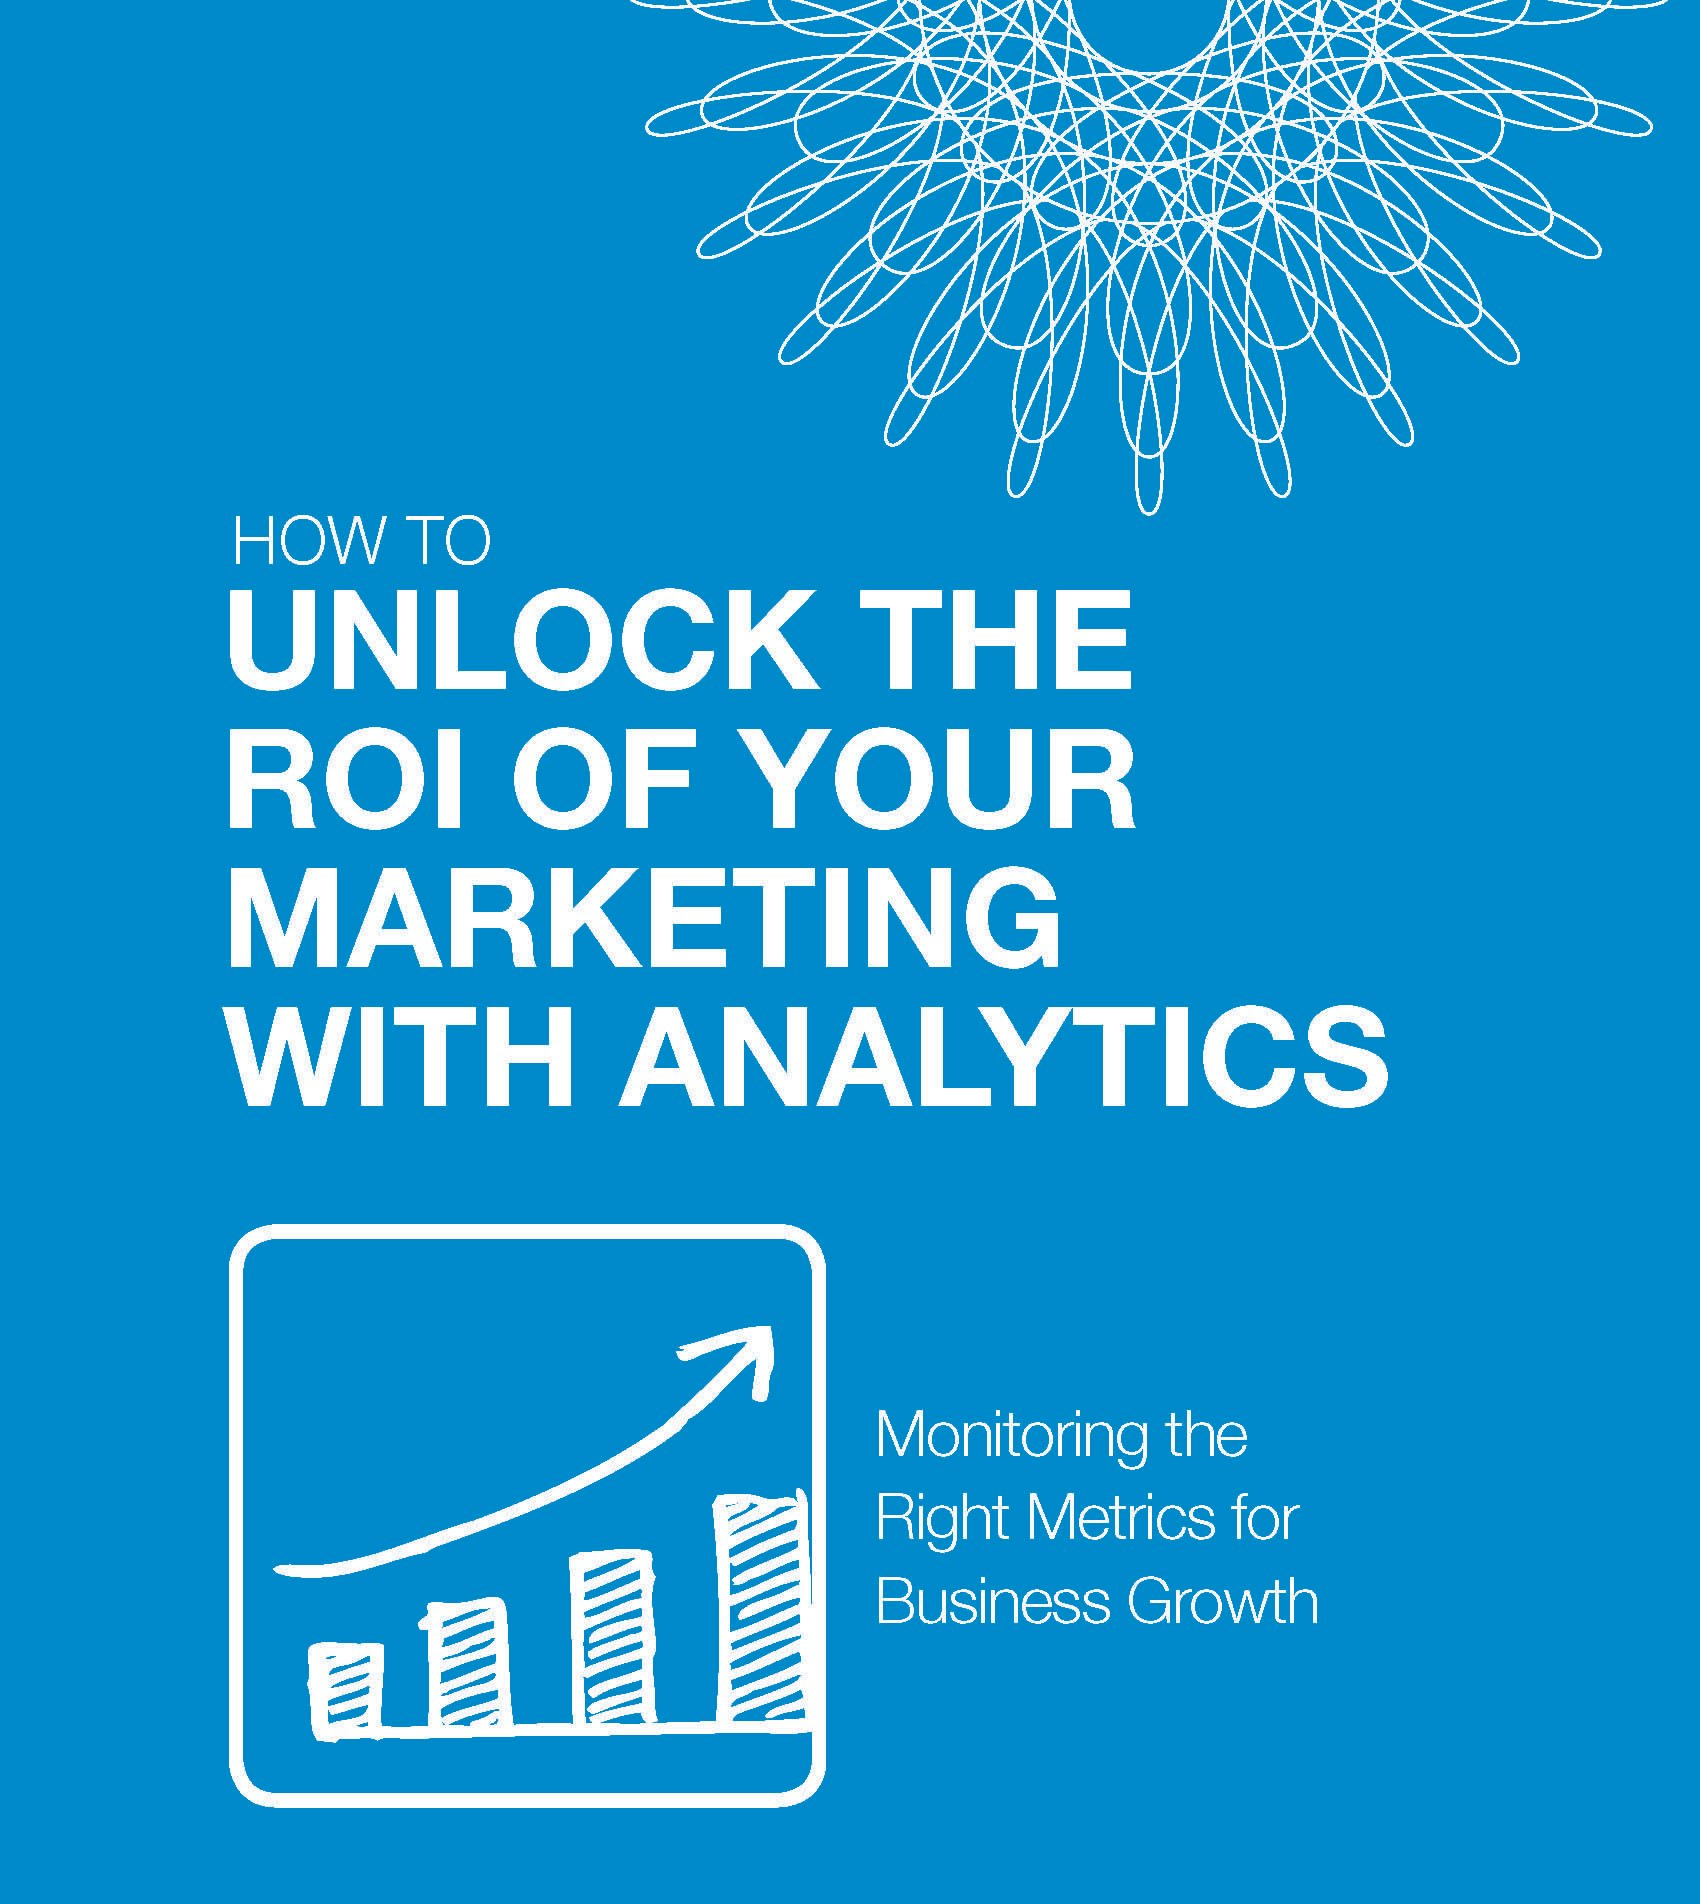 Partner_How_to_Unlock_the_ROI_of_Your_Marketing_with_Analytics_Rev_.jpg